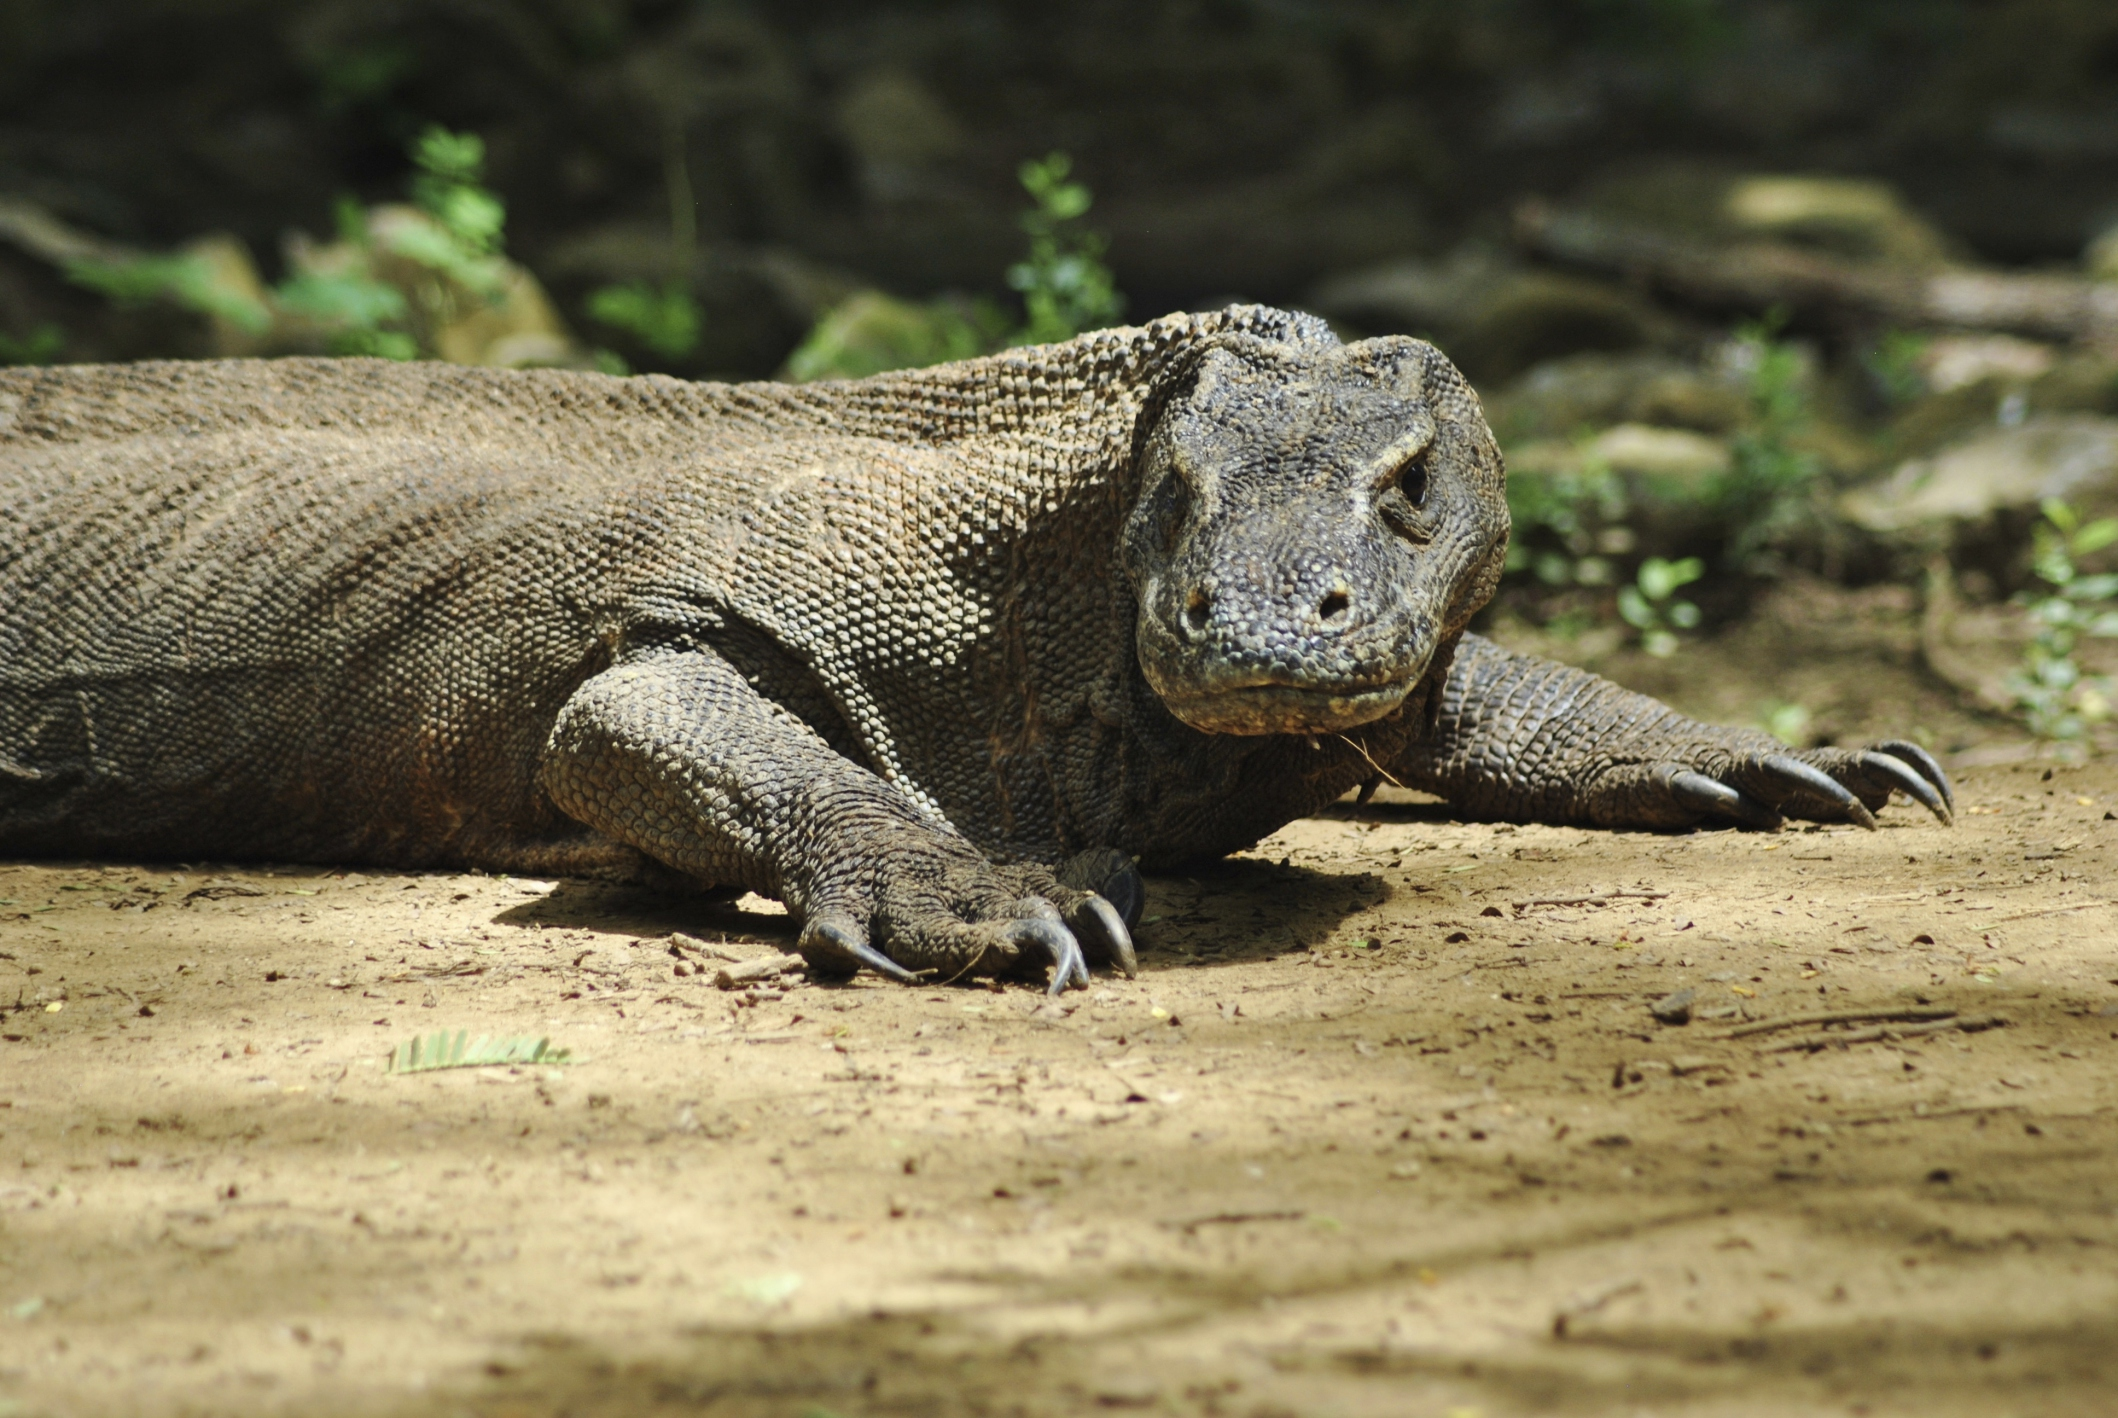 What Are the Adaptations for Reptiles to Live on Land? | Sciencing